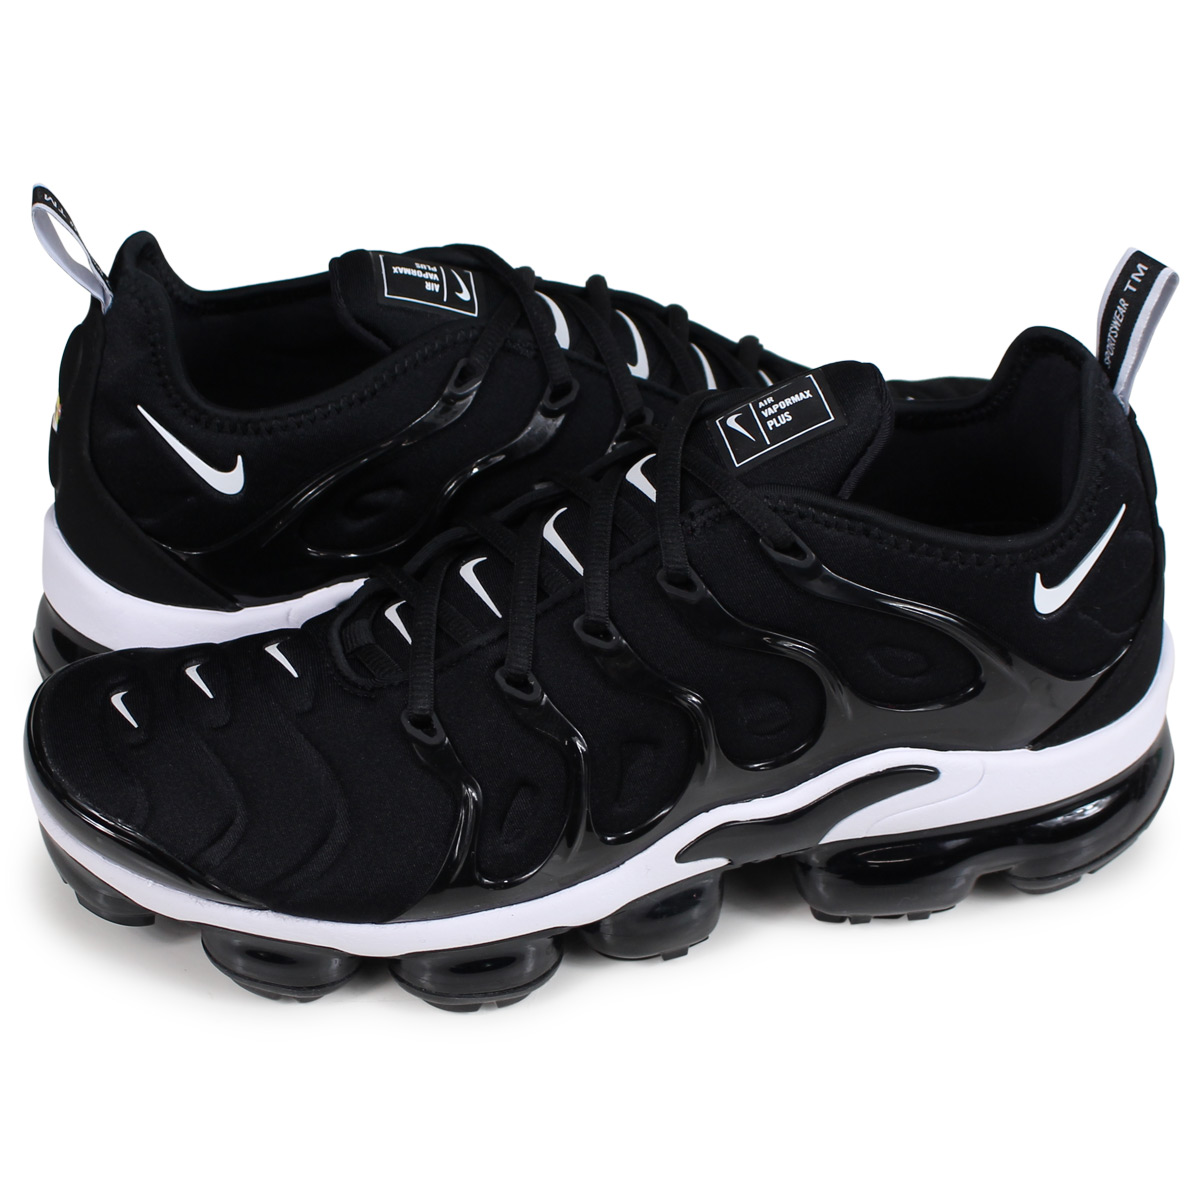 41d2212c97cc  brand NIKE getting high popularity from sneakers freak . I renew super  technology Air Max Plus ...